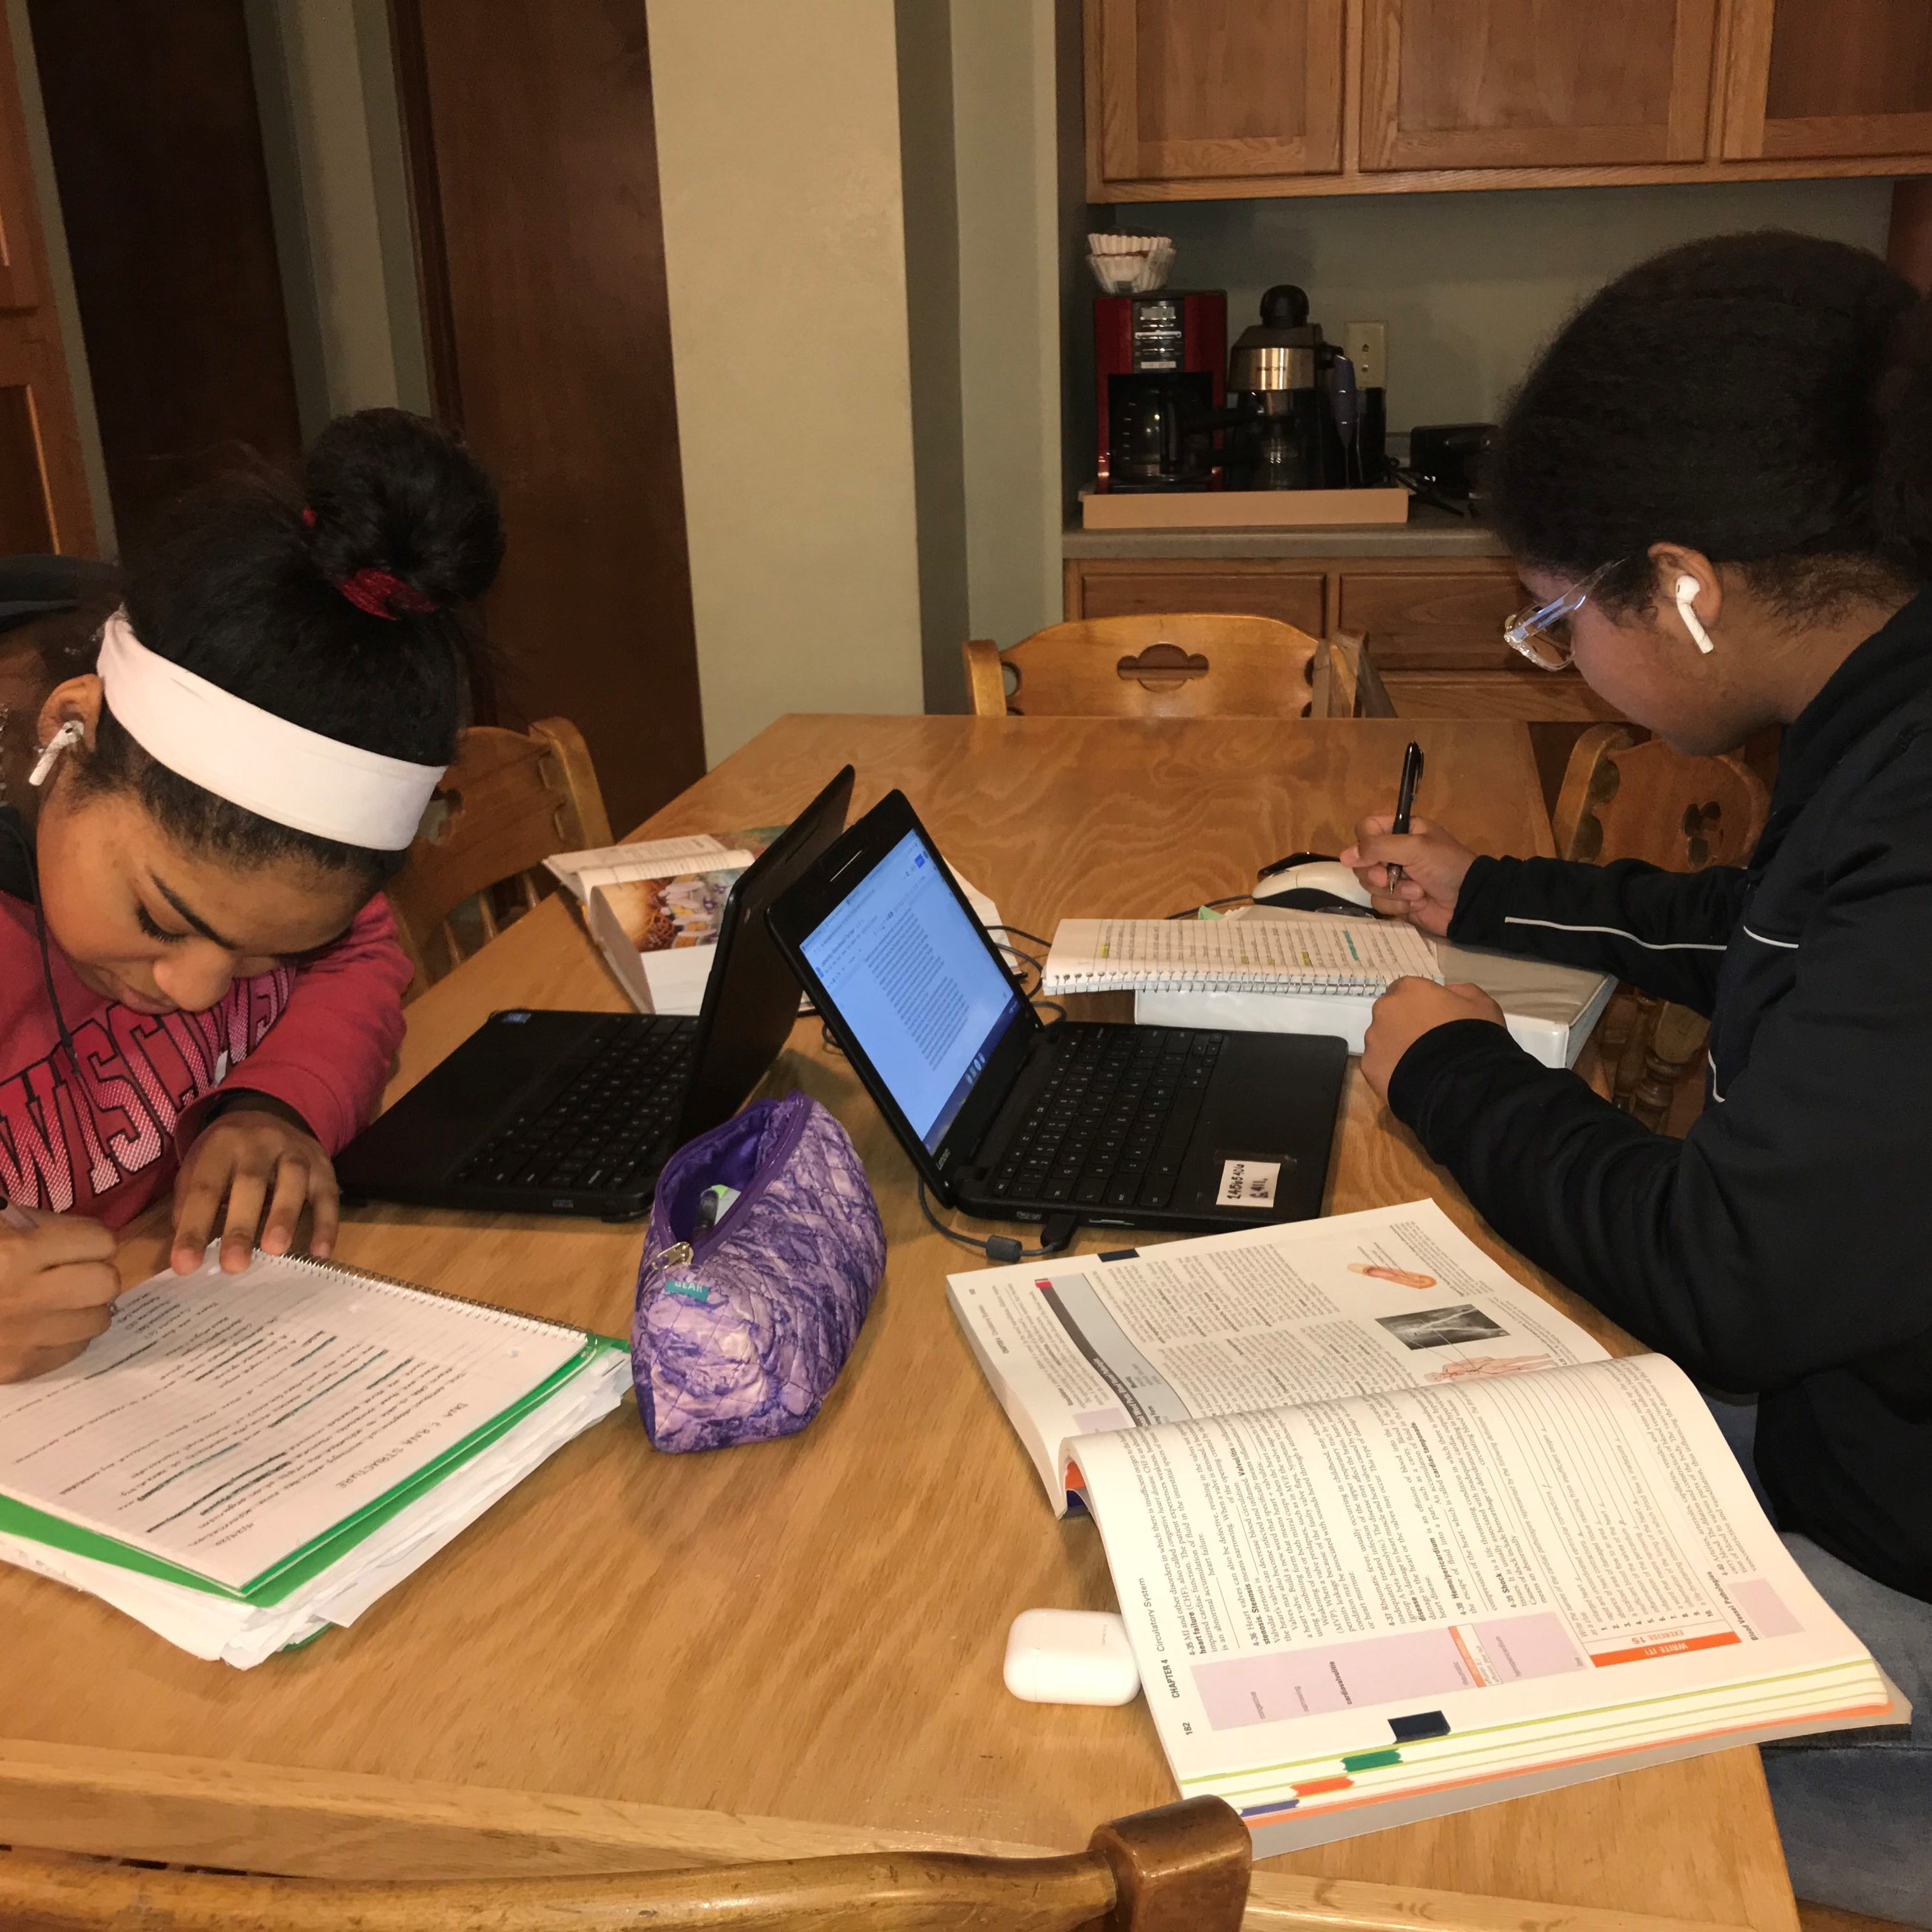 2020 Ap Test Changes For Coronavirus Online Essay For Most No